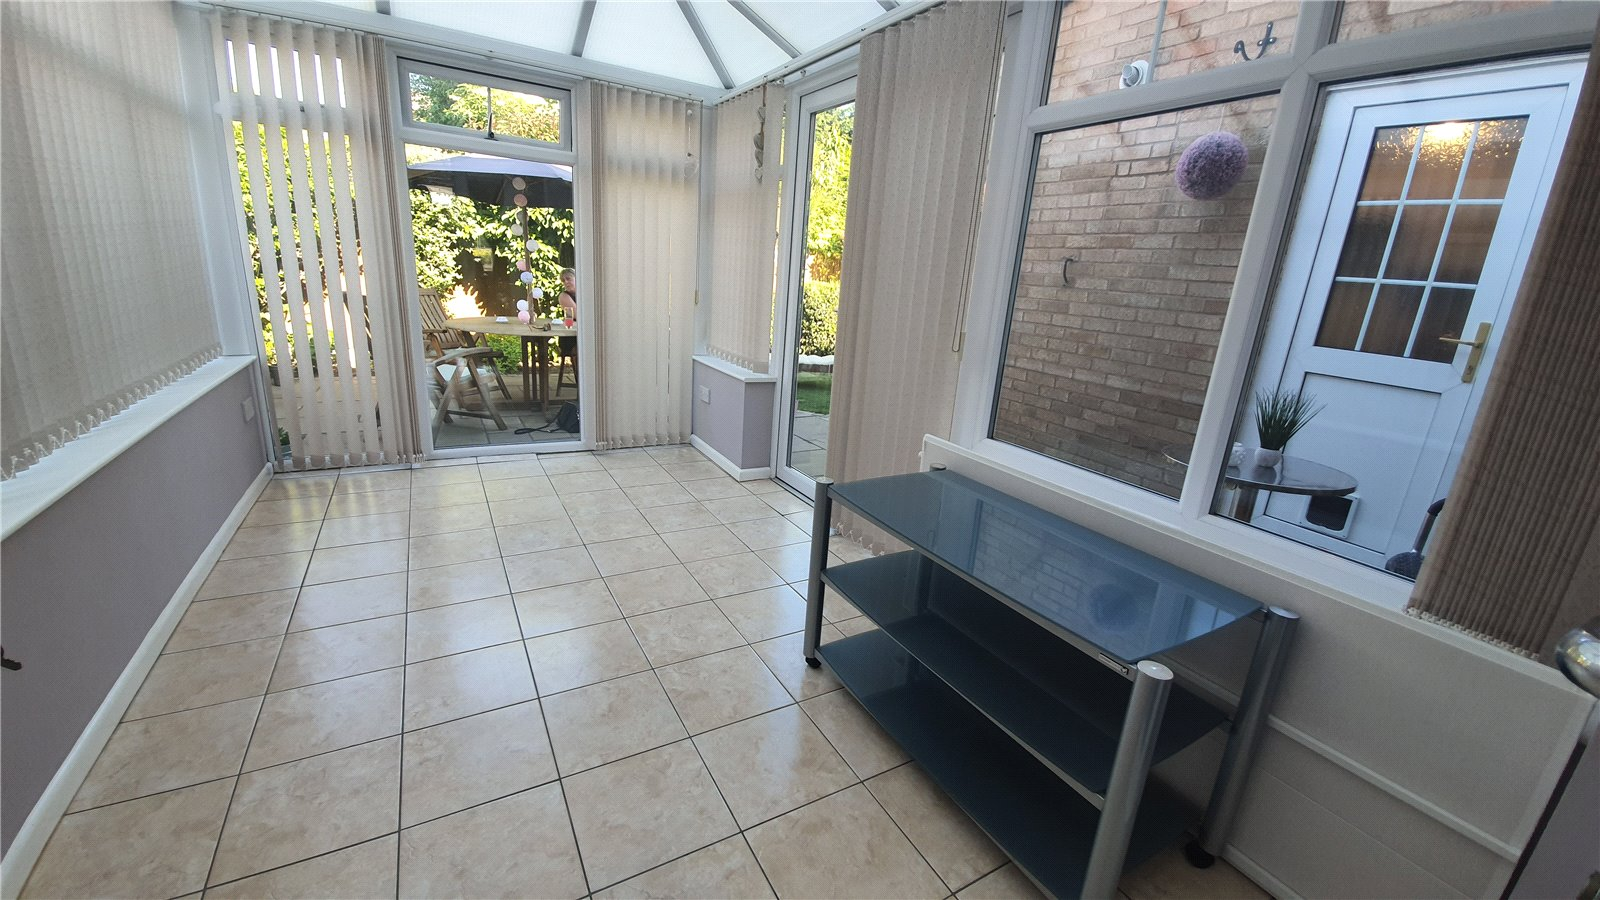 3 bed house for sale in Axis Way, Eaton Socon 2